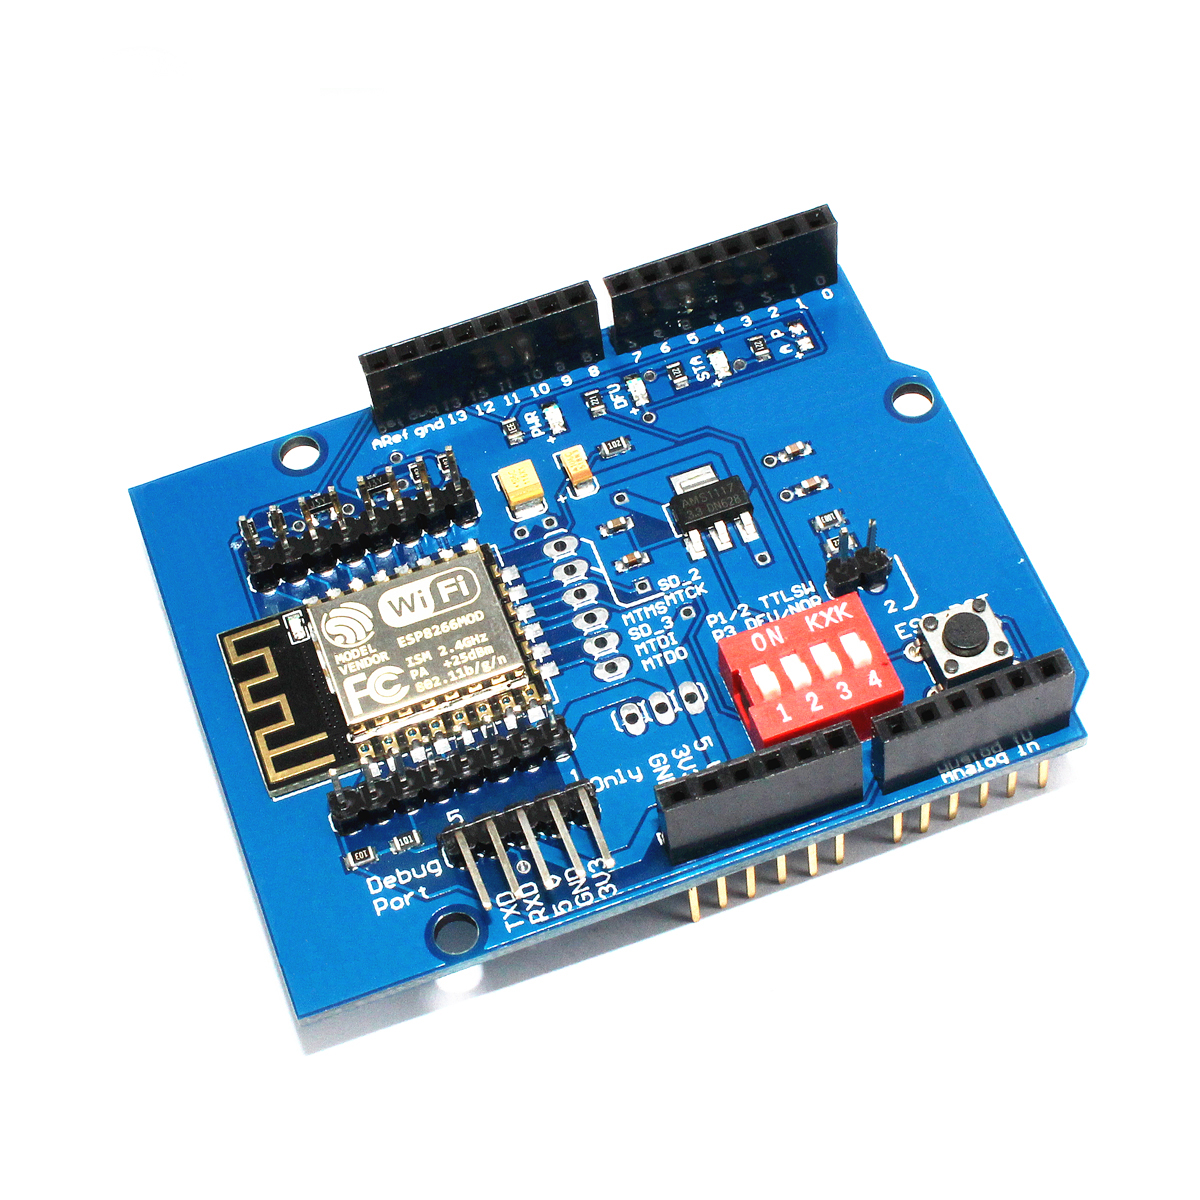 UNO R3 <font><b>ESP8266</b></font> serial WiFi <font><b>expansion</b></font> <font><b>board</b></font> shiled ESP-12E development <font><b>board</b></font> for Arduino image